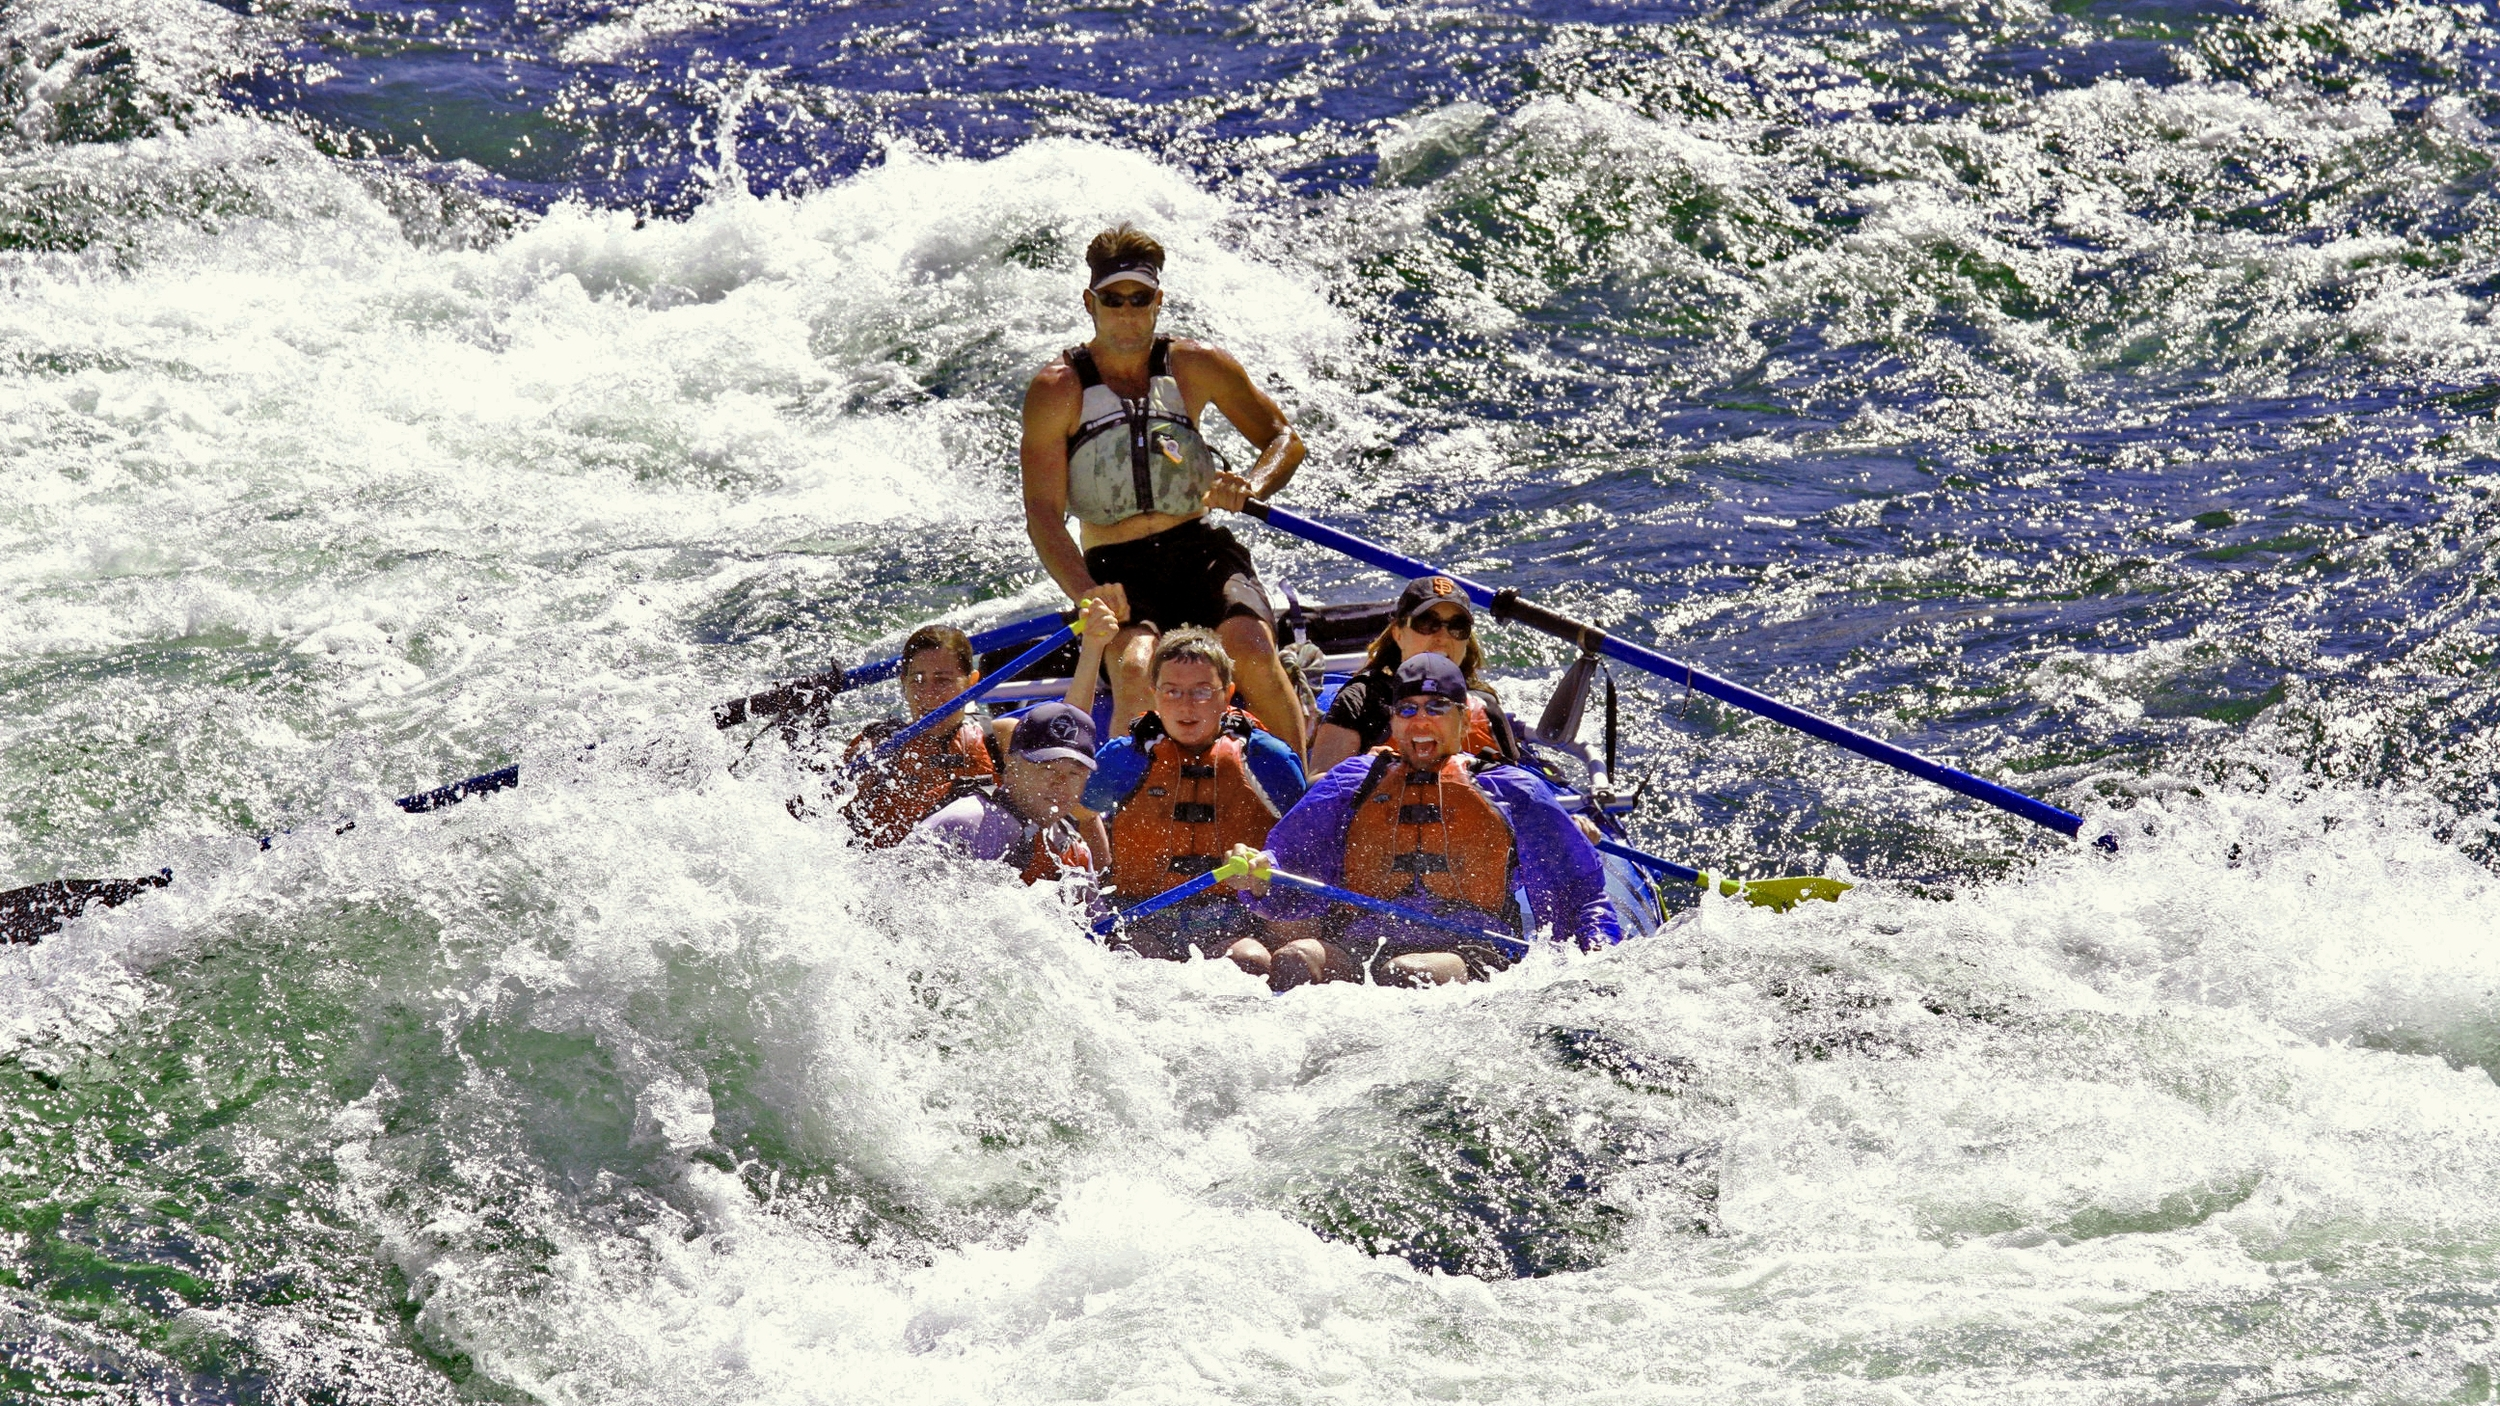 Raft of kids disappearing behind a big whitewater wave while rafting on the Salmon River.